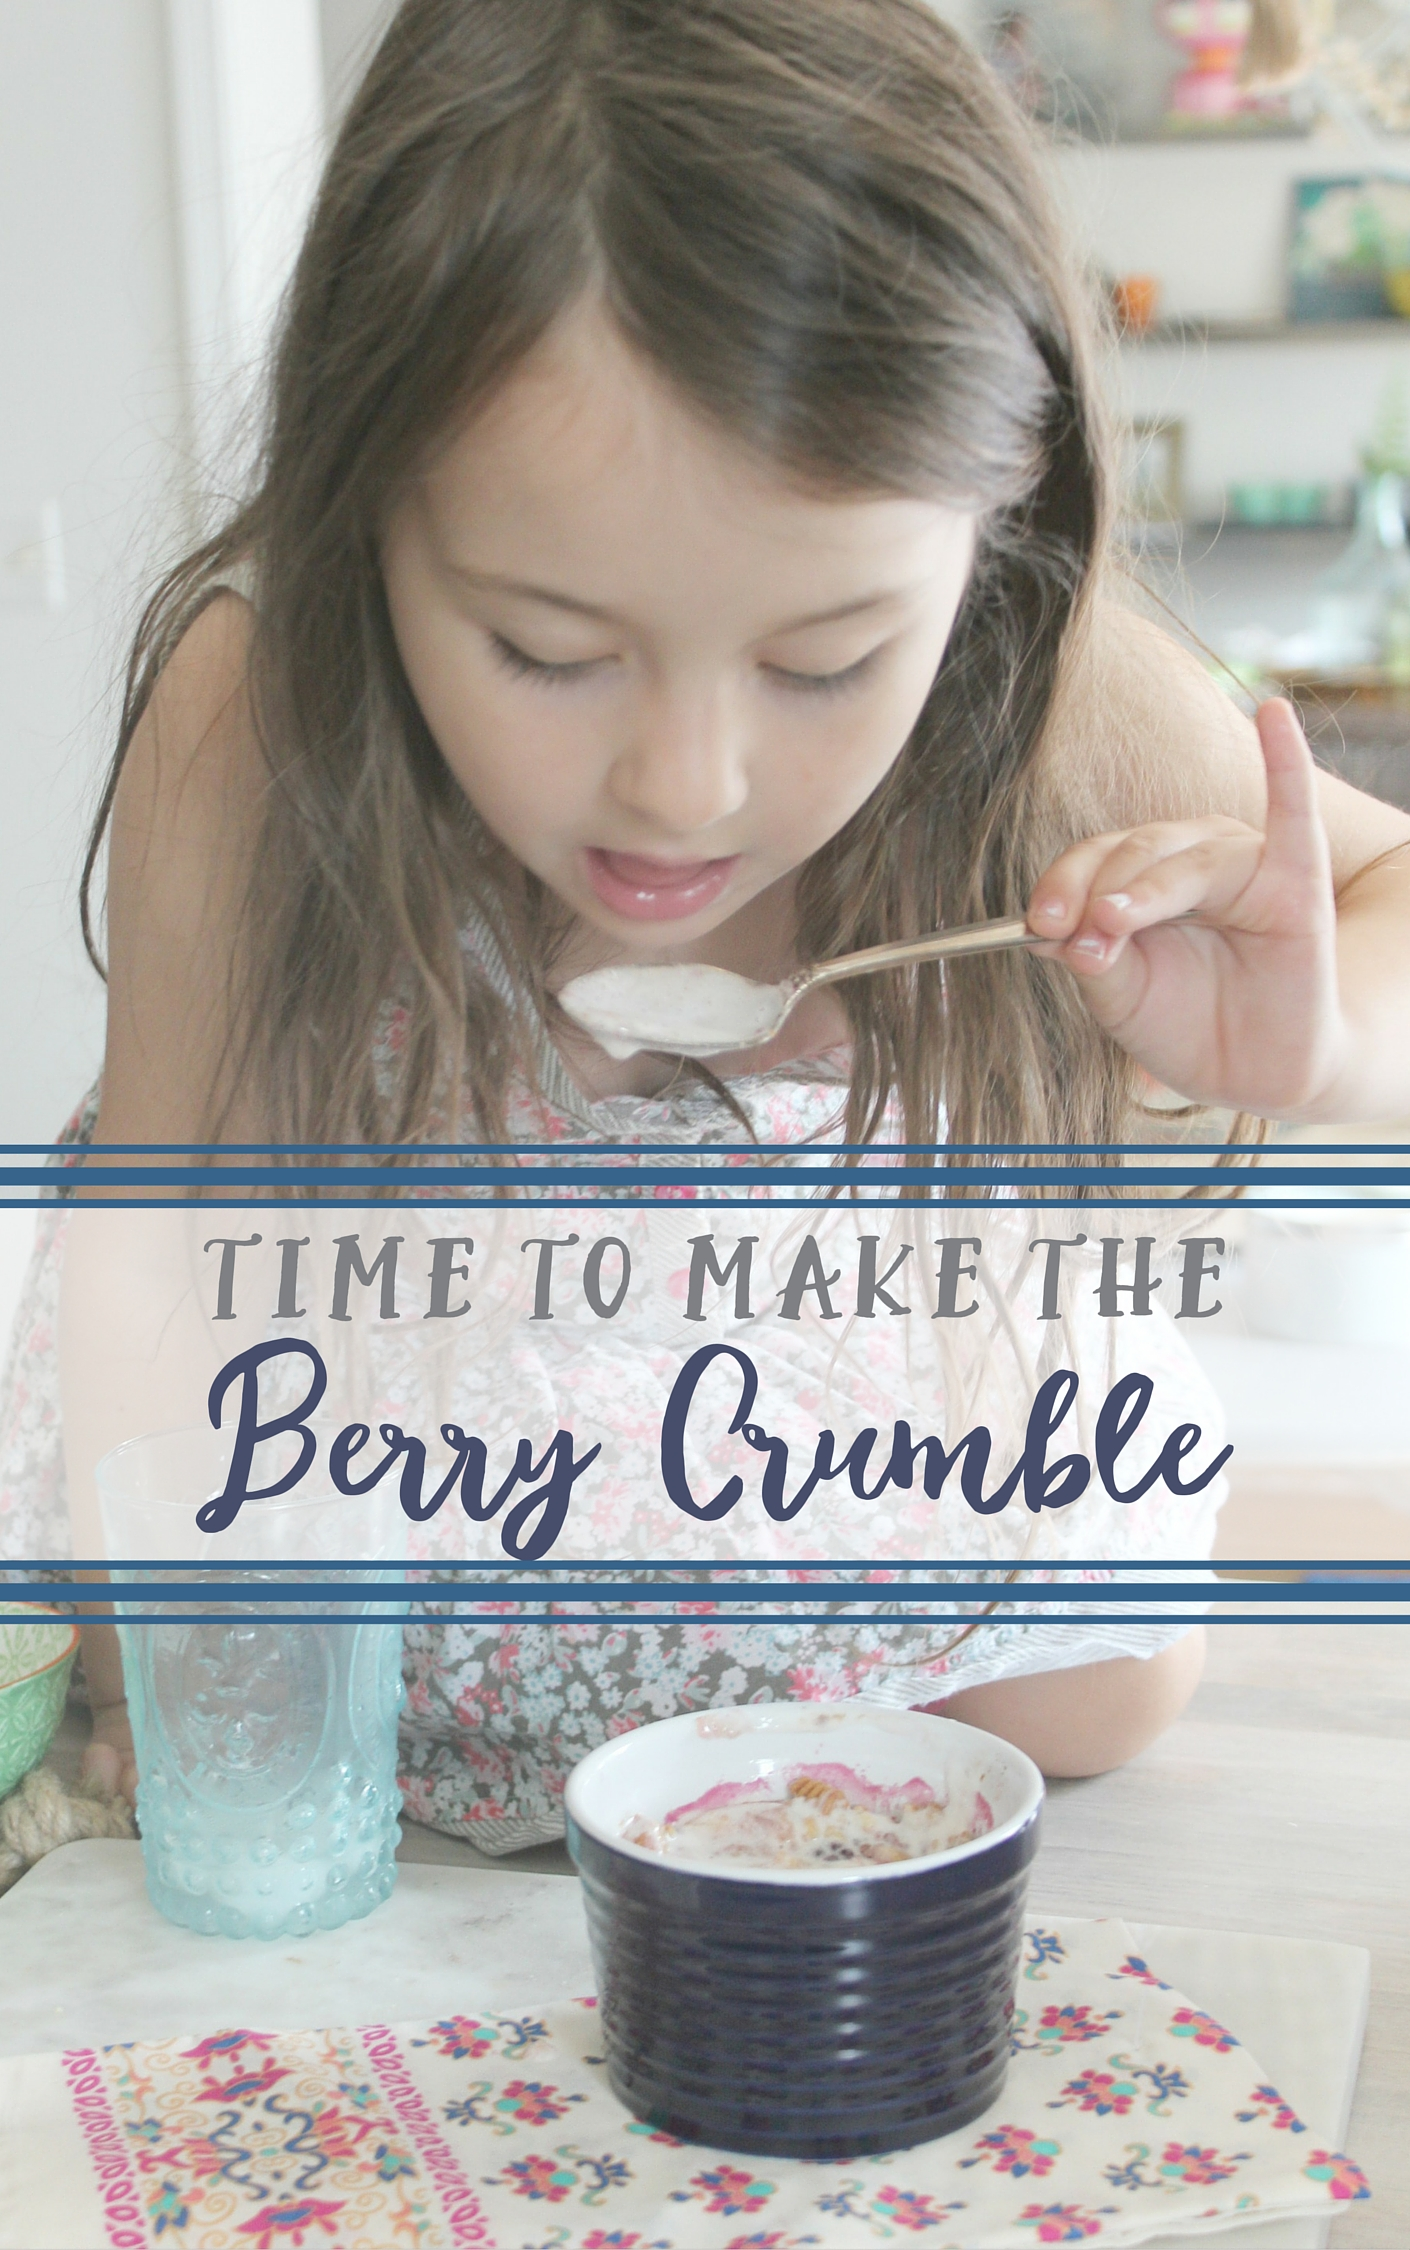 Time to Make the Berry Crumble